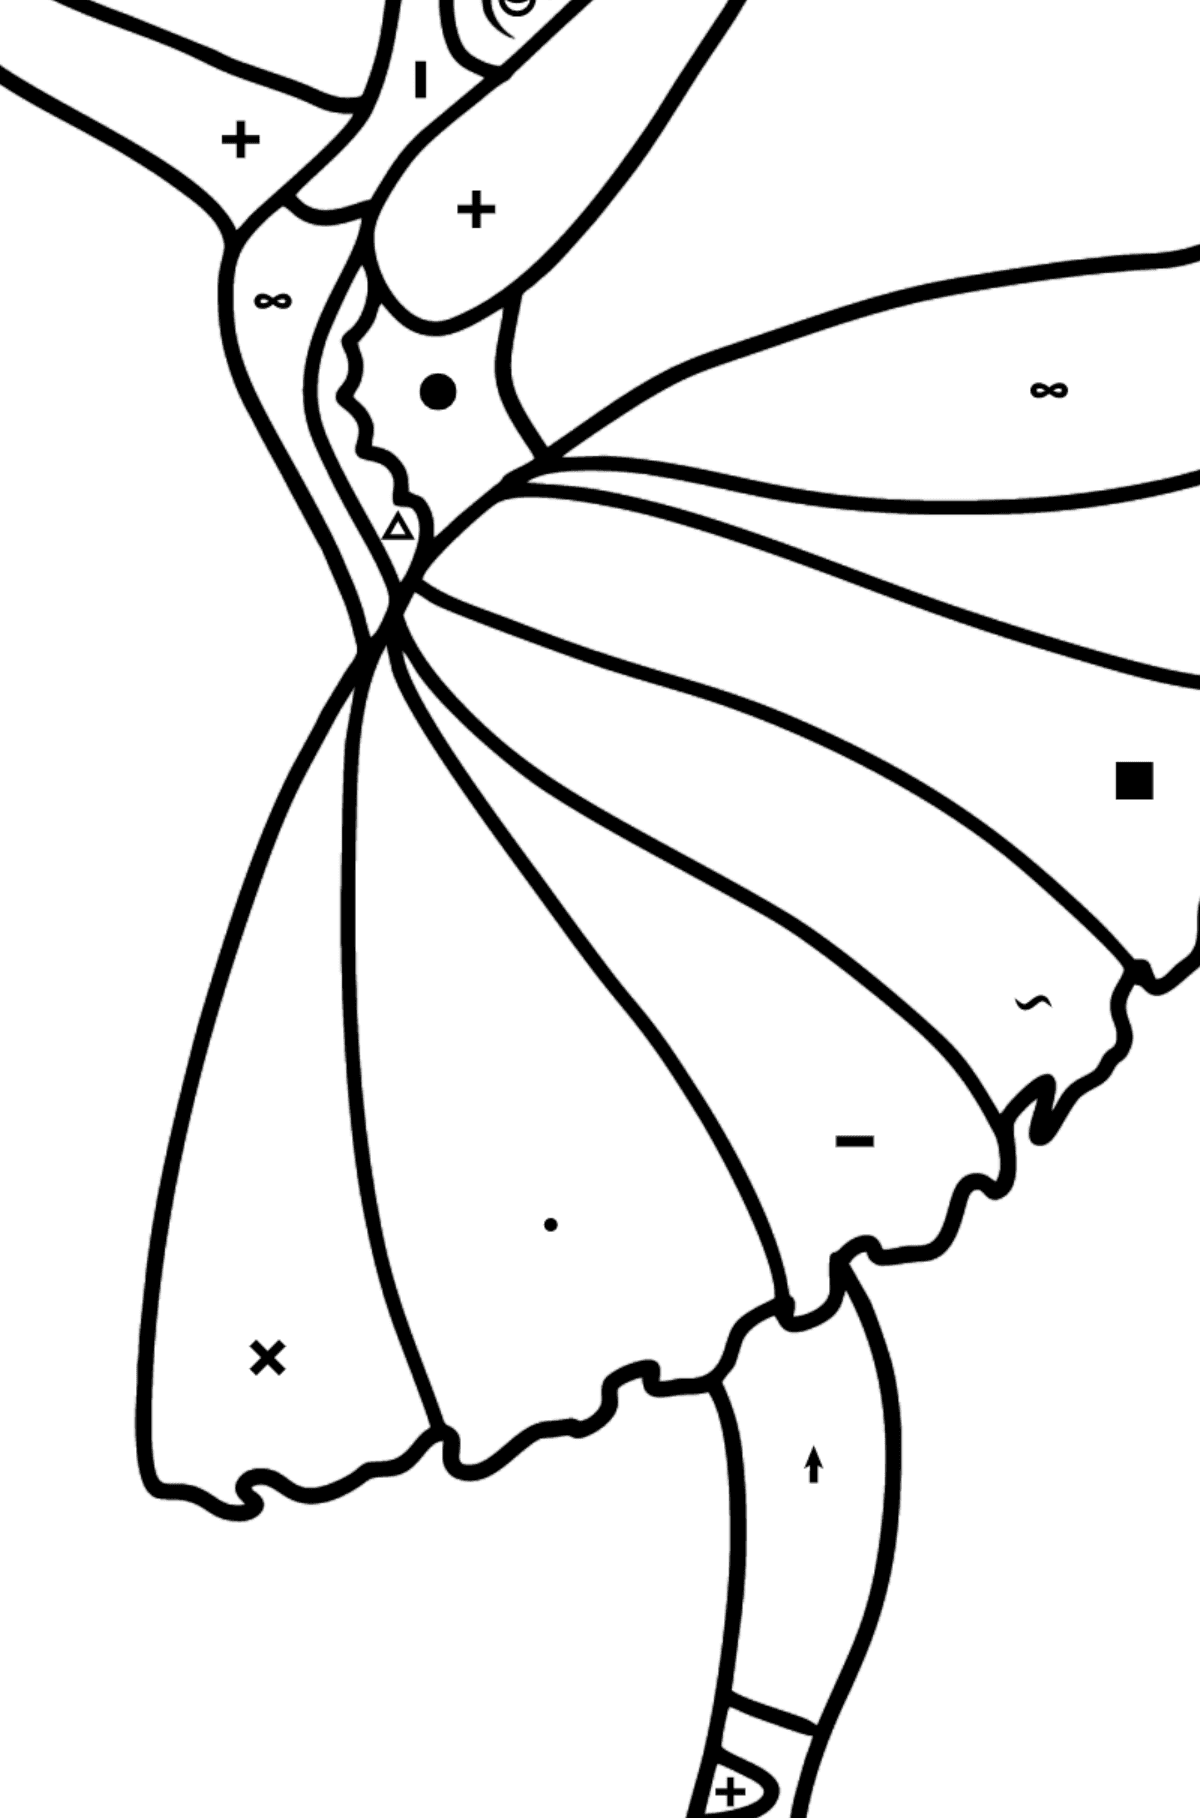 Beautiful ballerina coloring page - Coloring by Symbols for Kids